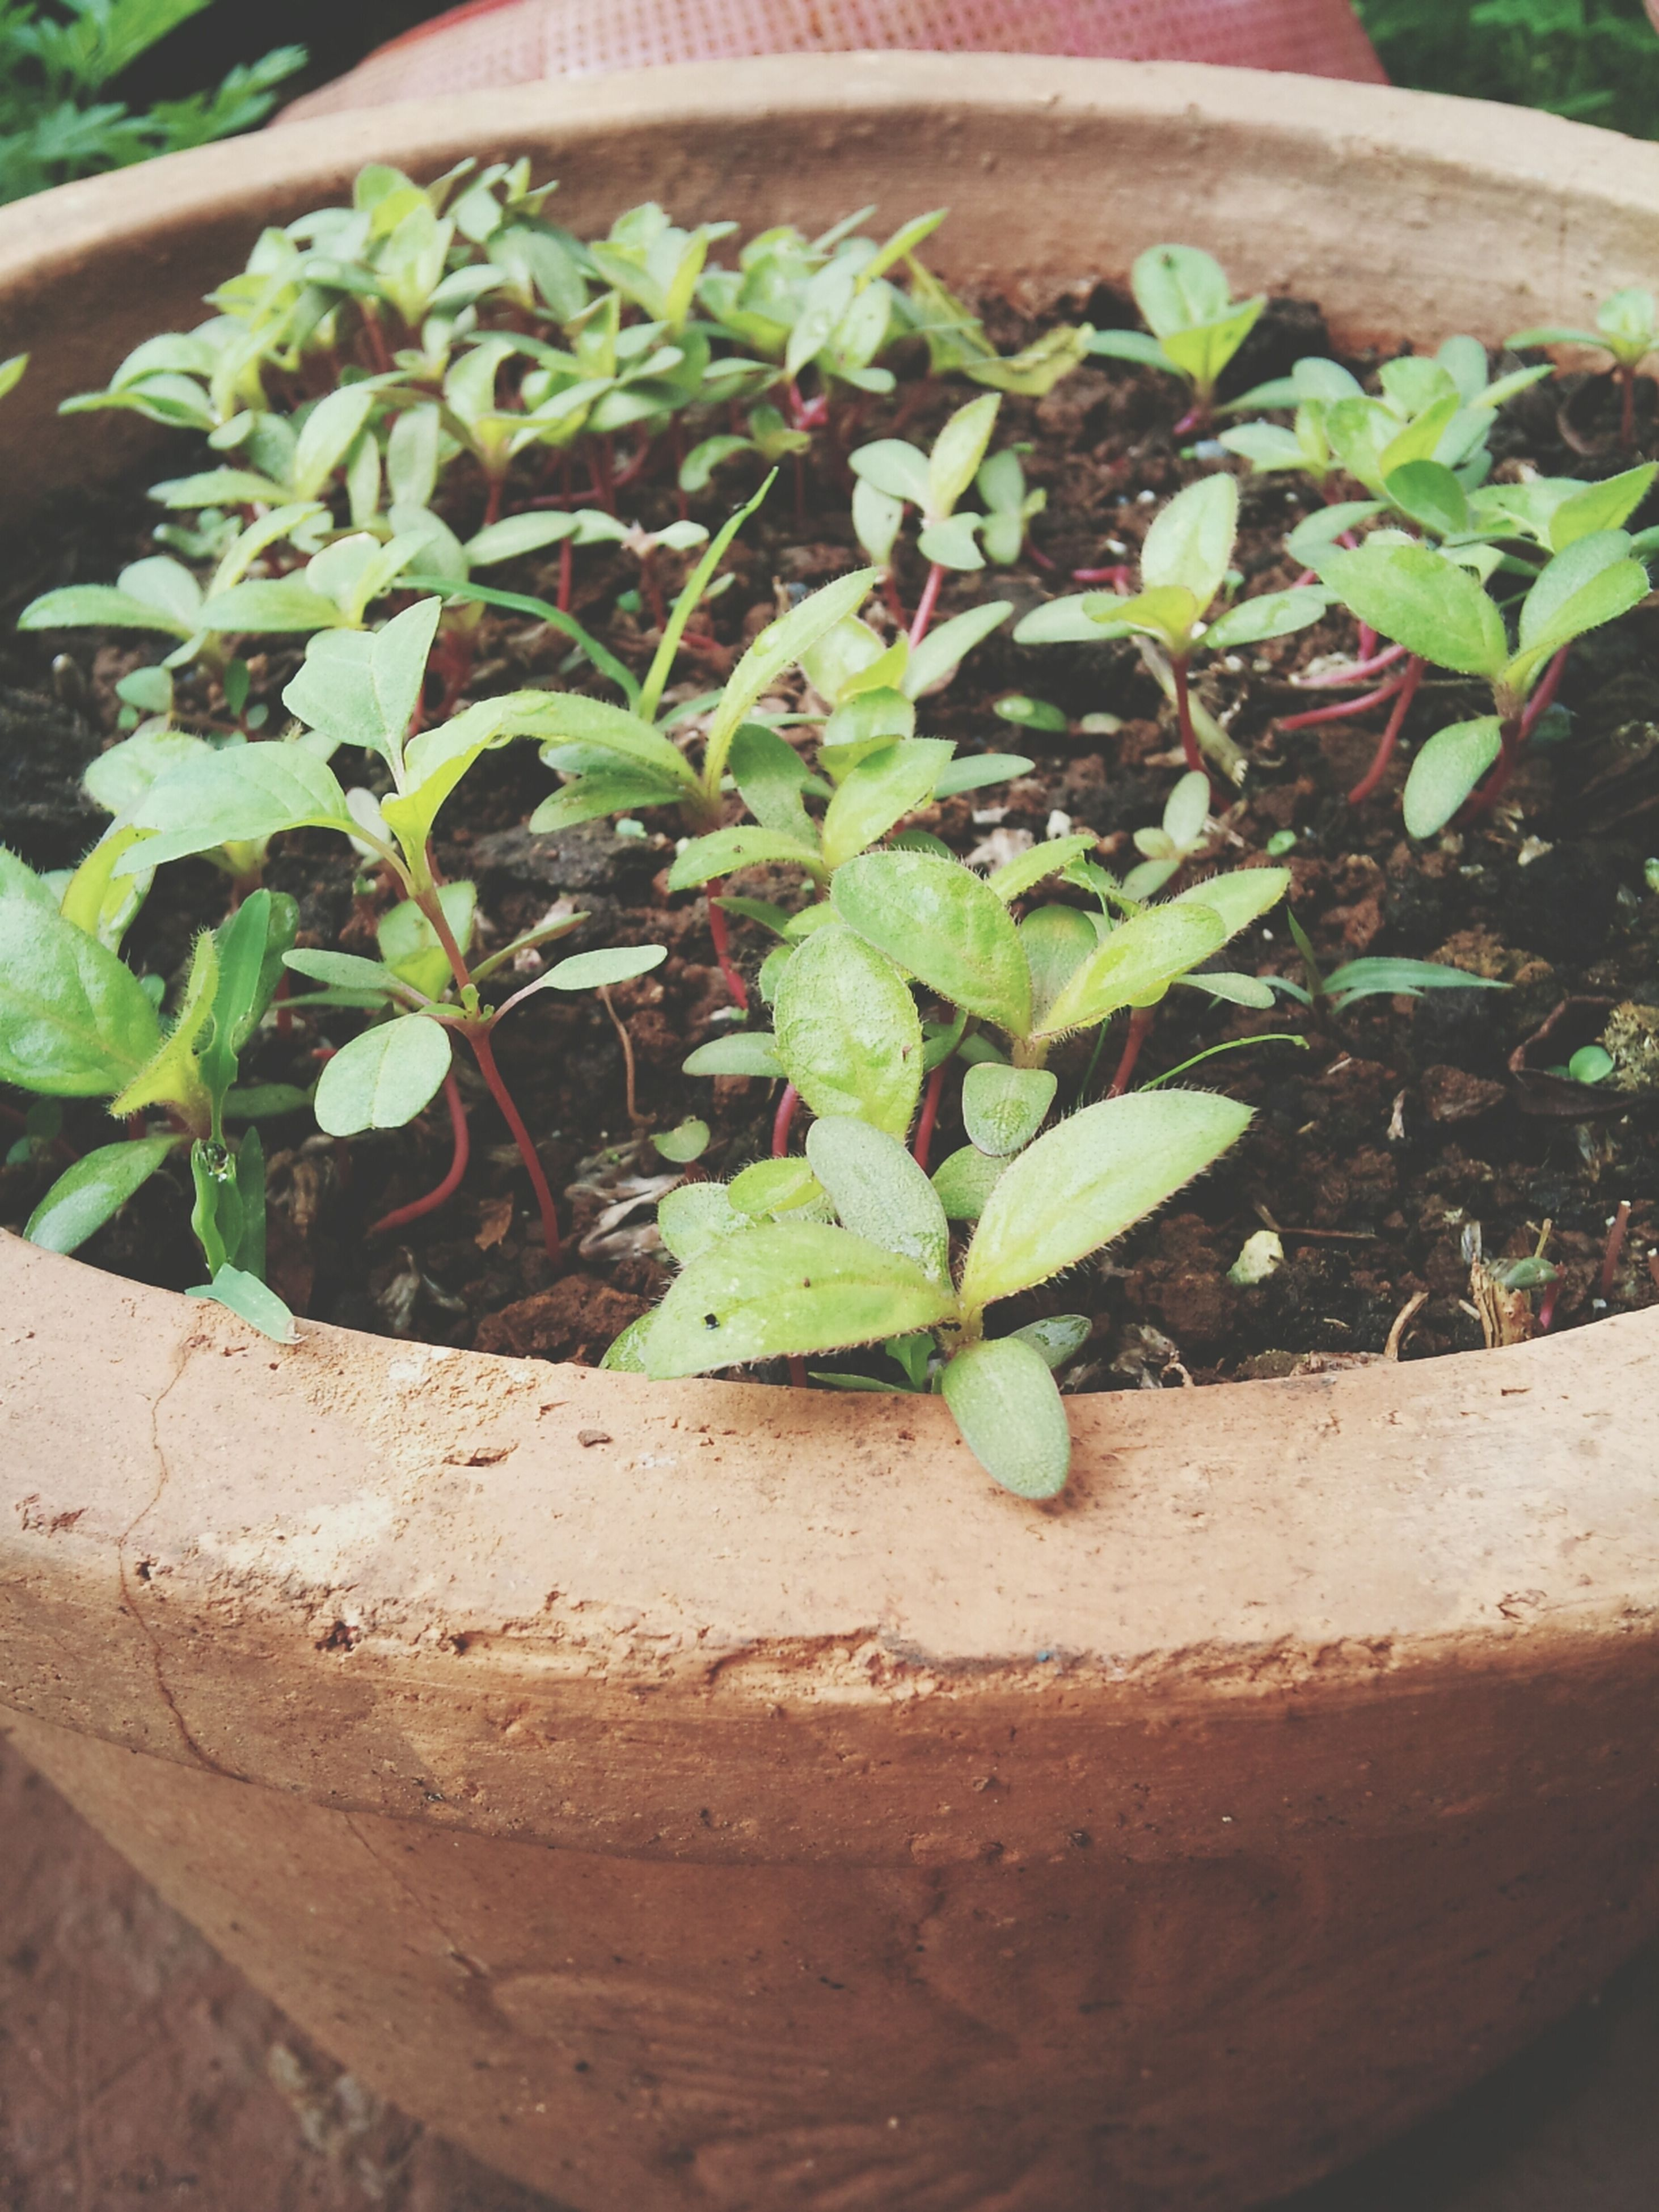 leaf, freshness, green color, plant, high angle view, growth, food and drink, food, vegetable, nature, healthy eating, close-up, potted plant, day, no people, table, outdoors, wood - material, green, growing